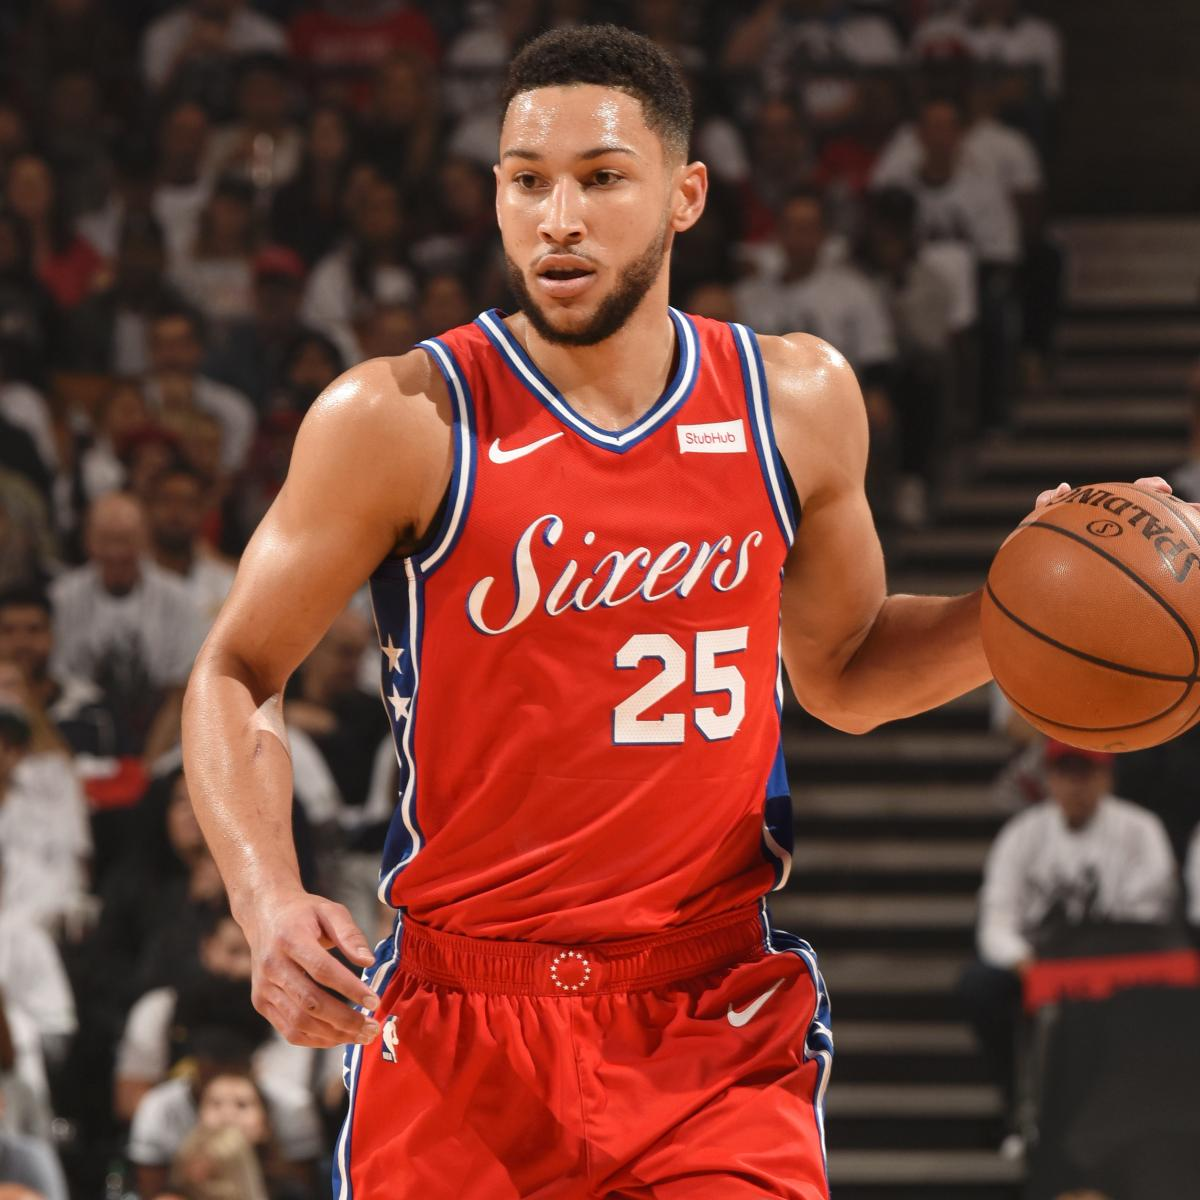 """The Philadelphia 76ers and star point guard Ben Simmons are nearing a max contract extension. According to Adrian Wojnarowski of ESPN, Philly has """" offered a five-year, $168M ..."""